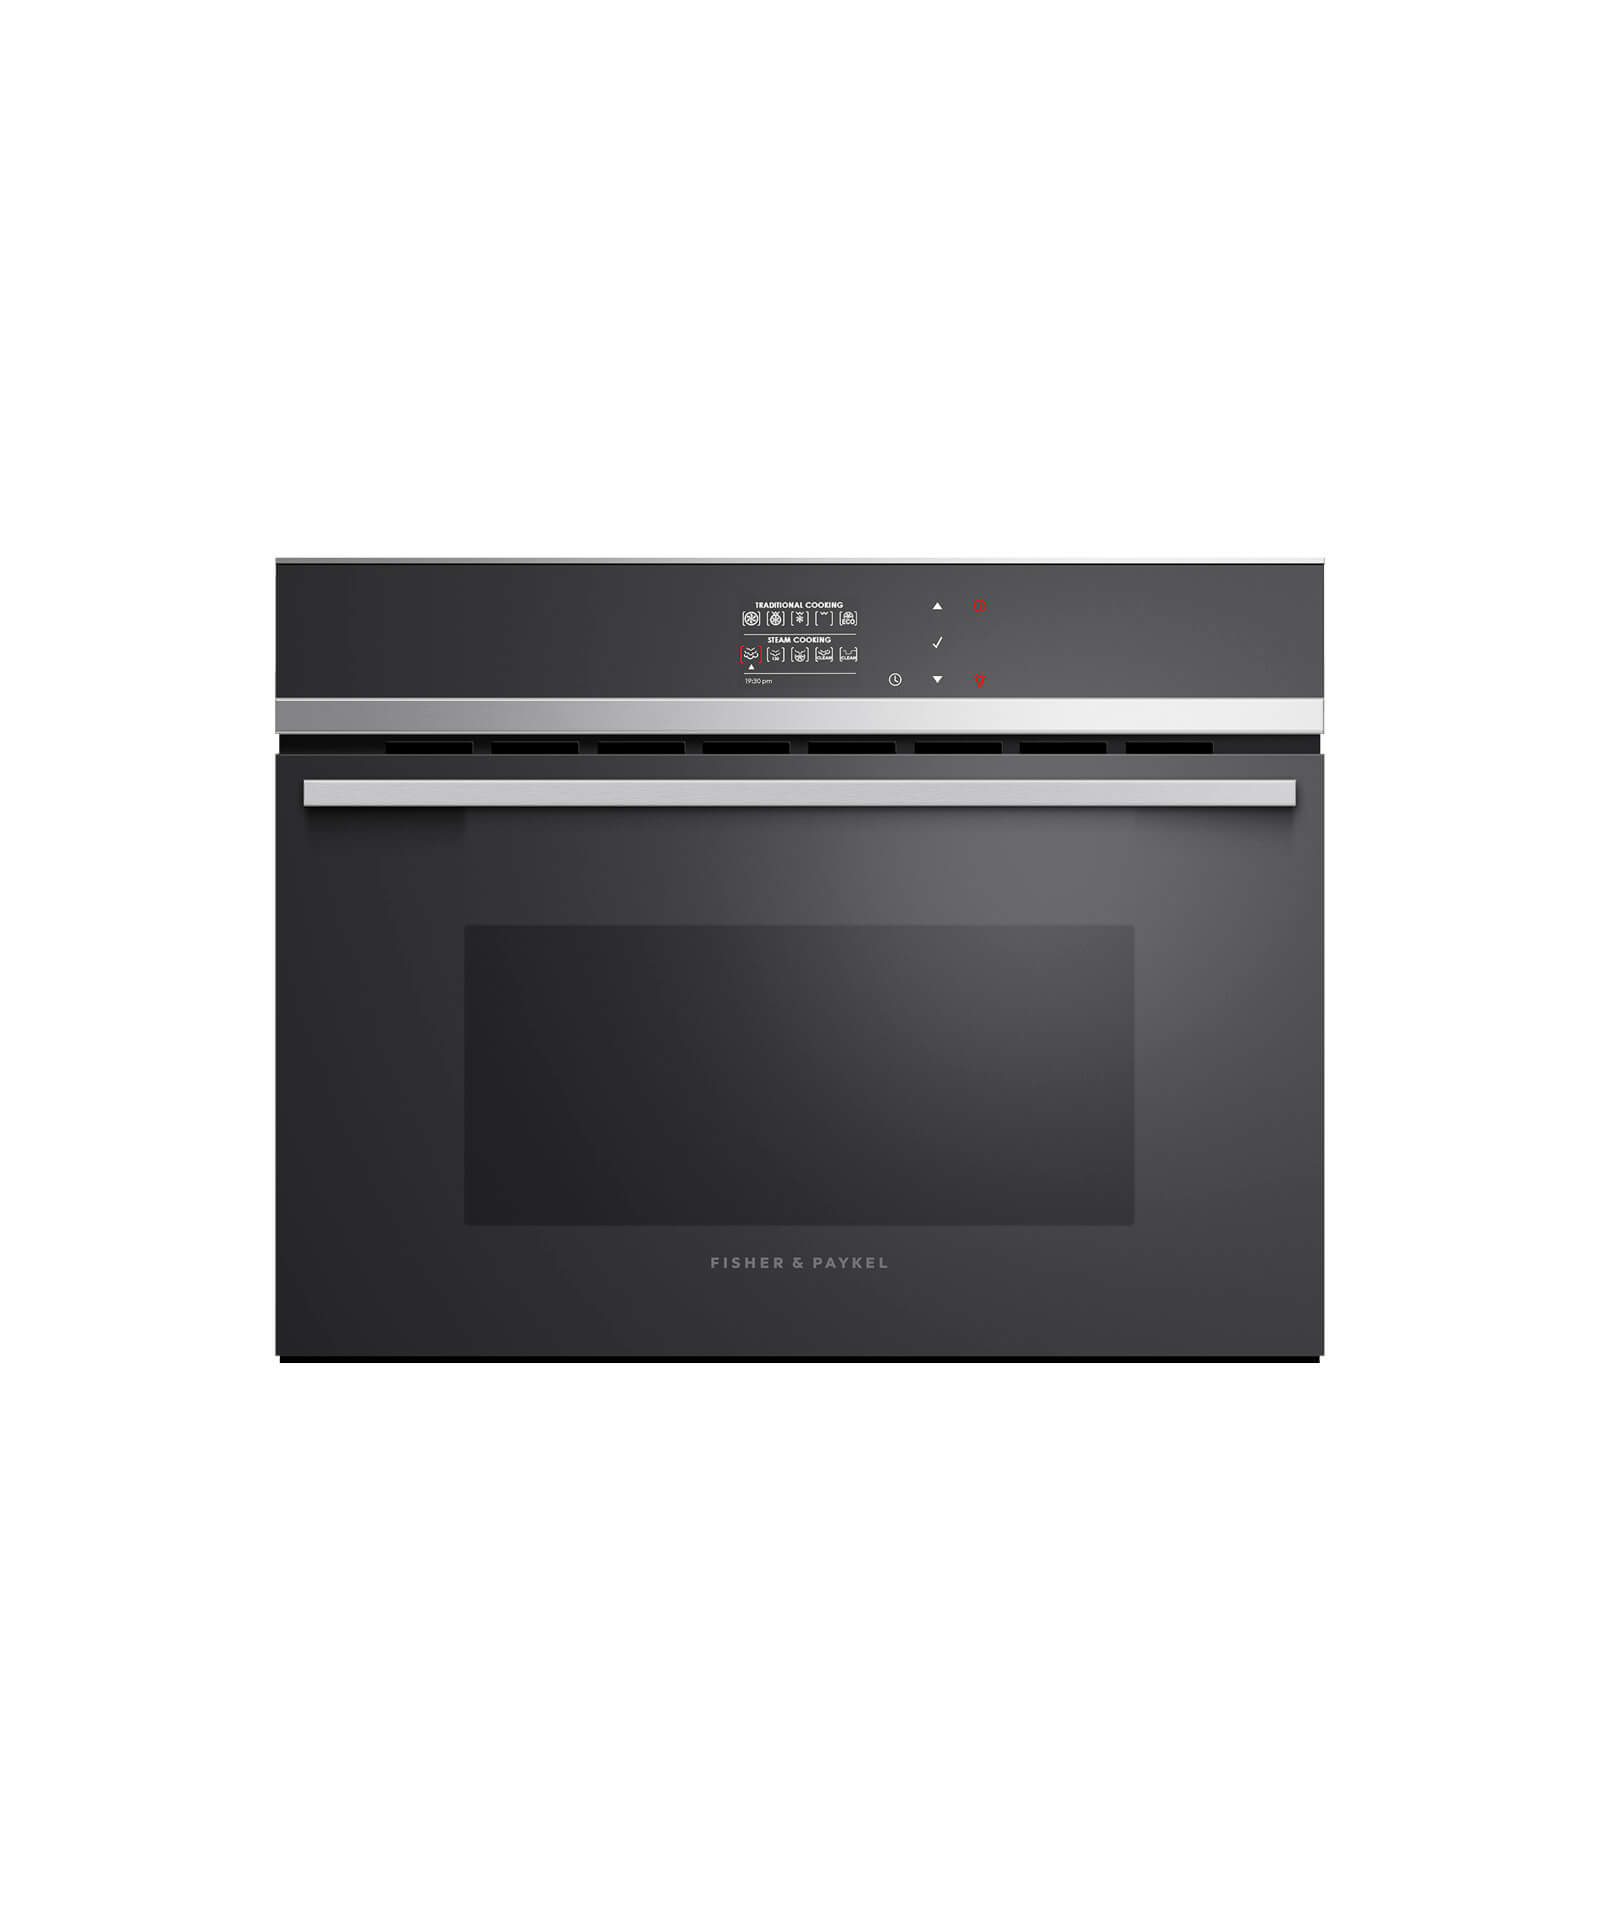 "Fisher and Paykel 24"" Built-in Combination Steam Wall Oven"